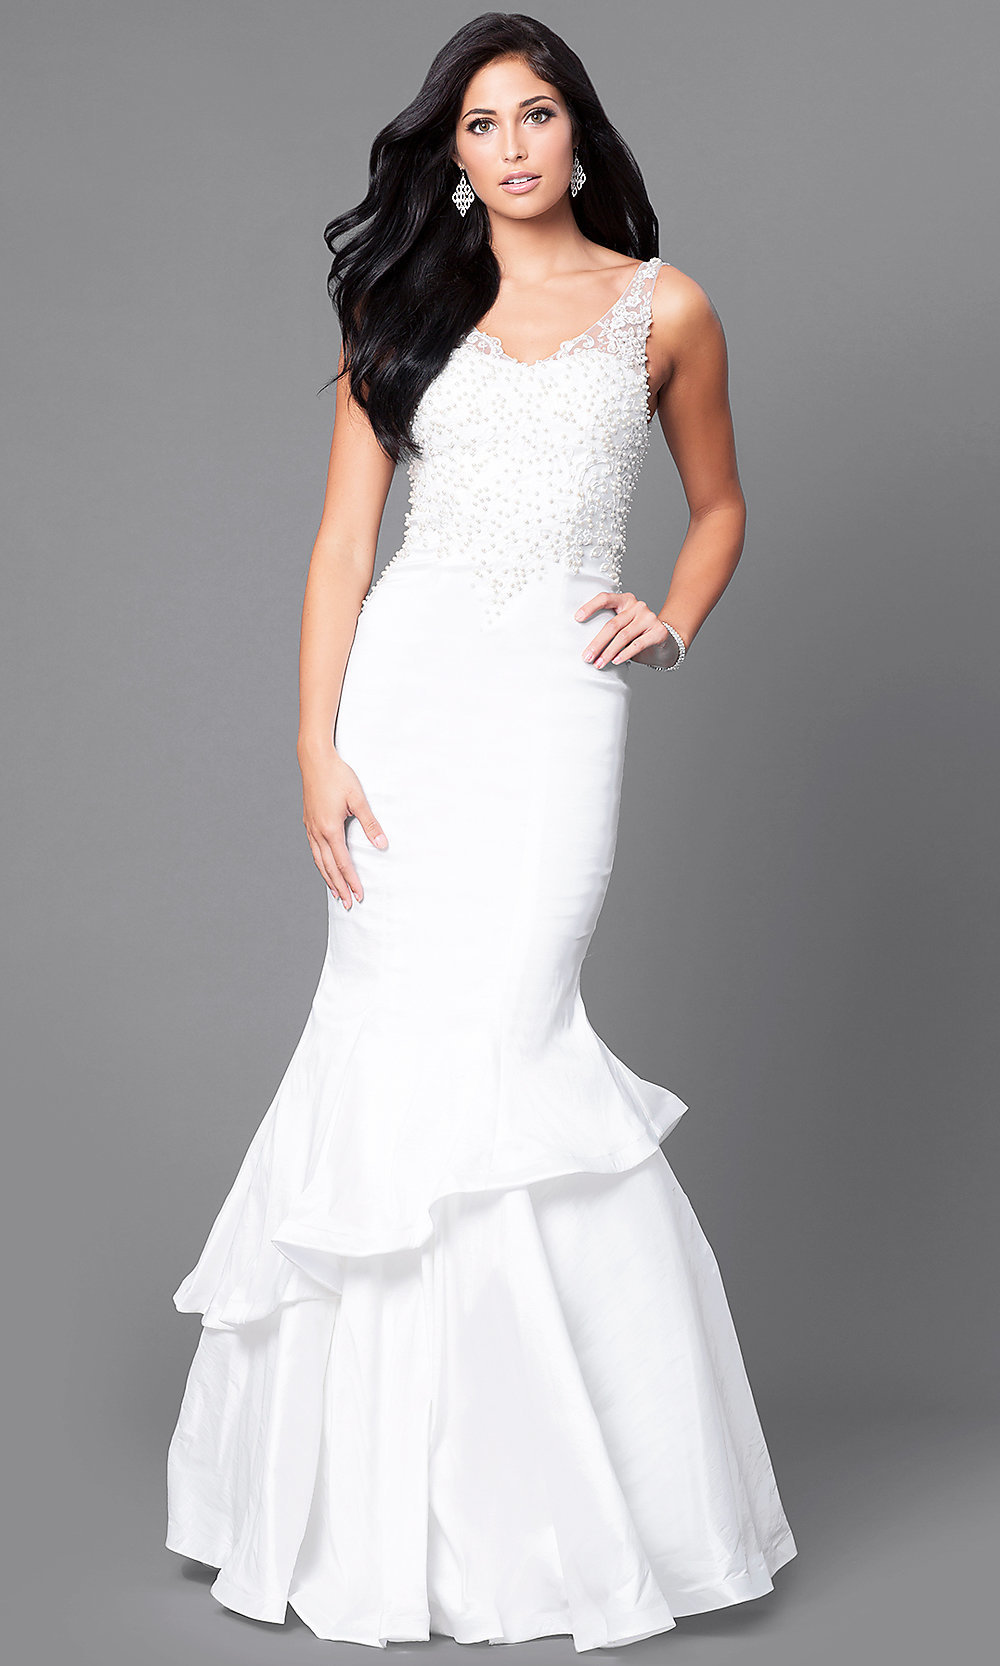 Formal Mermaid Prom Dress 2019 with V-Neck -PromGirl